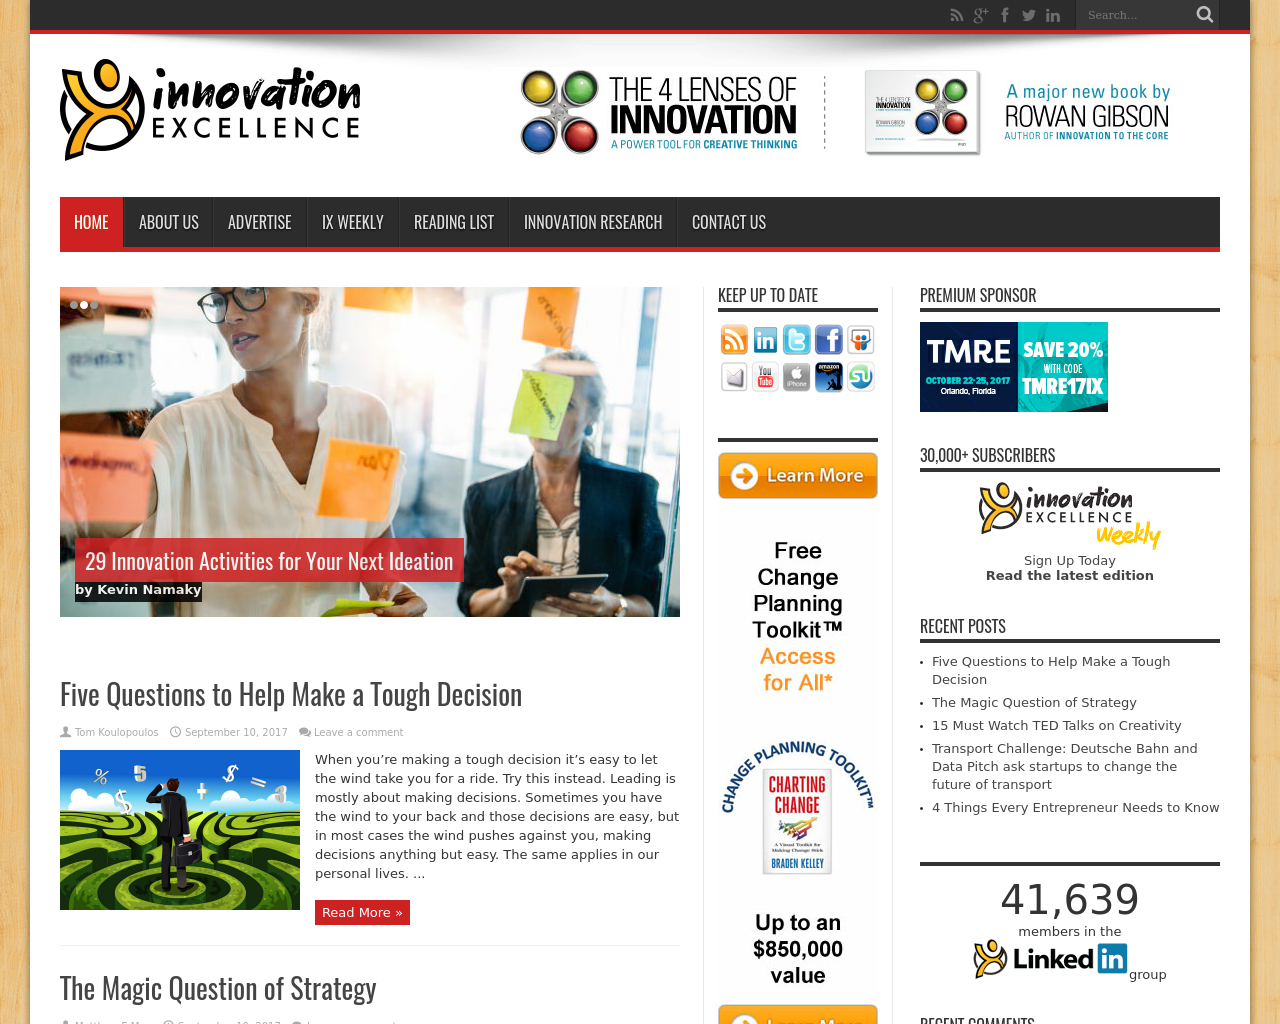 innovation-Excellence-Advertising-Reviews-Pricing